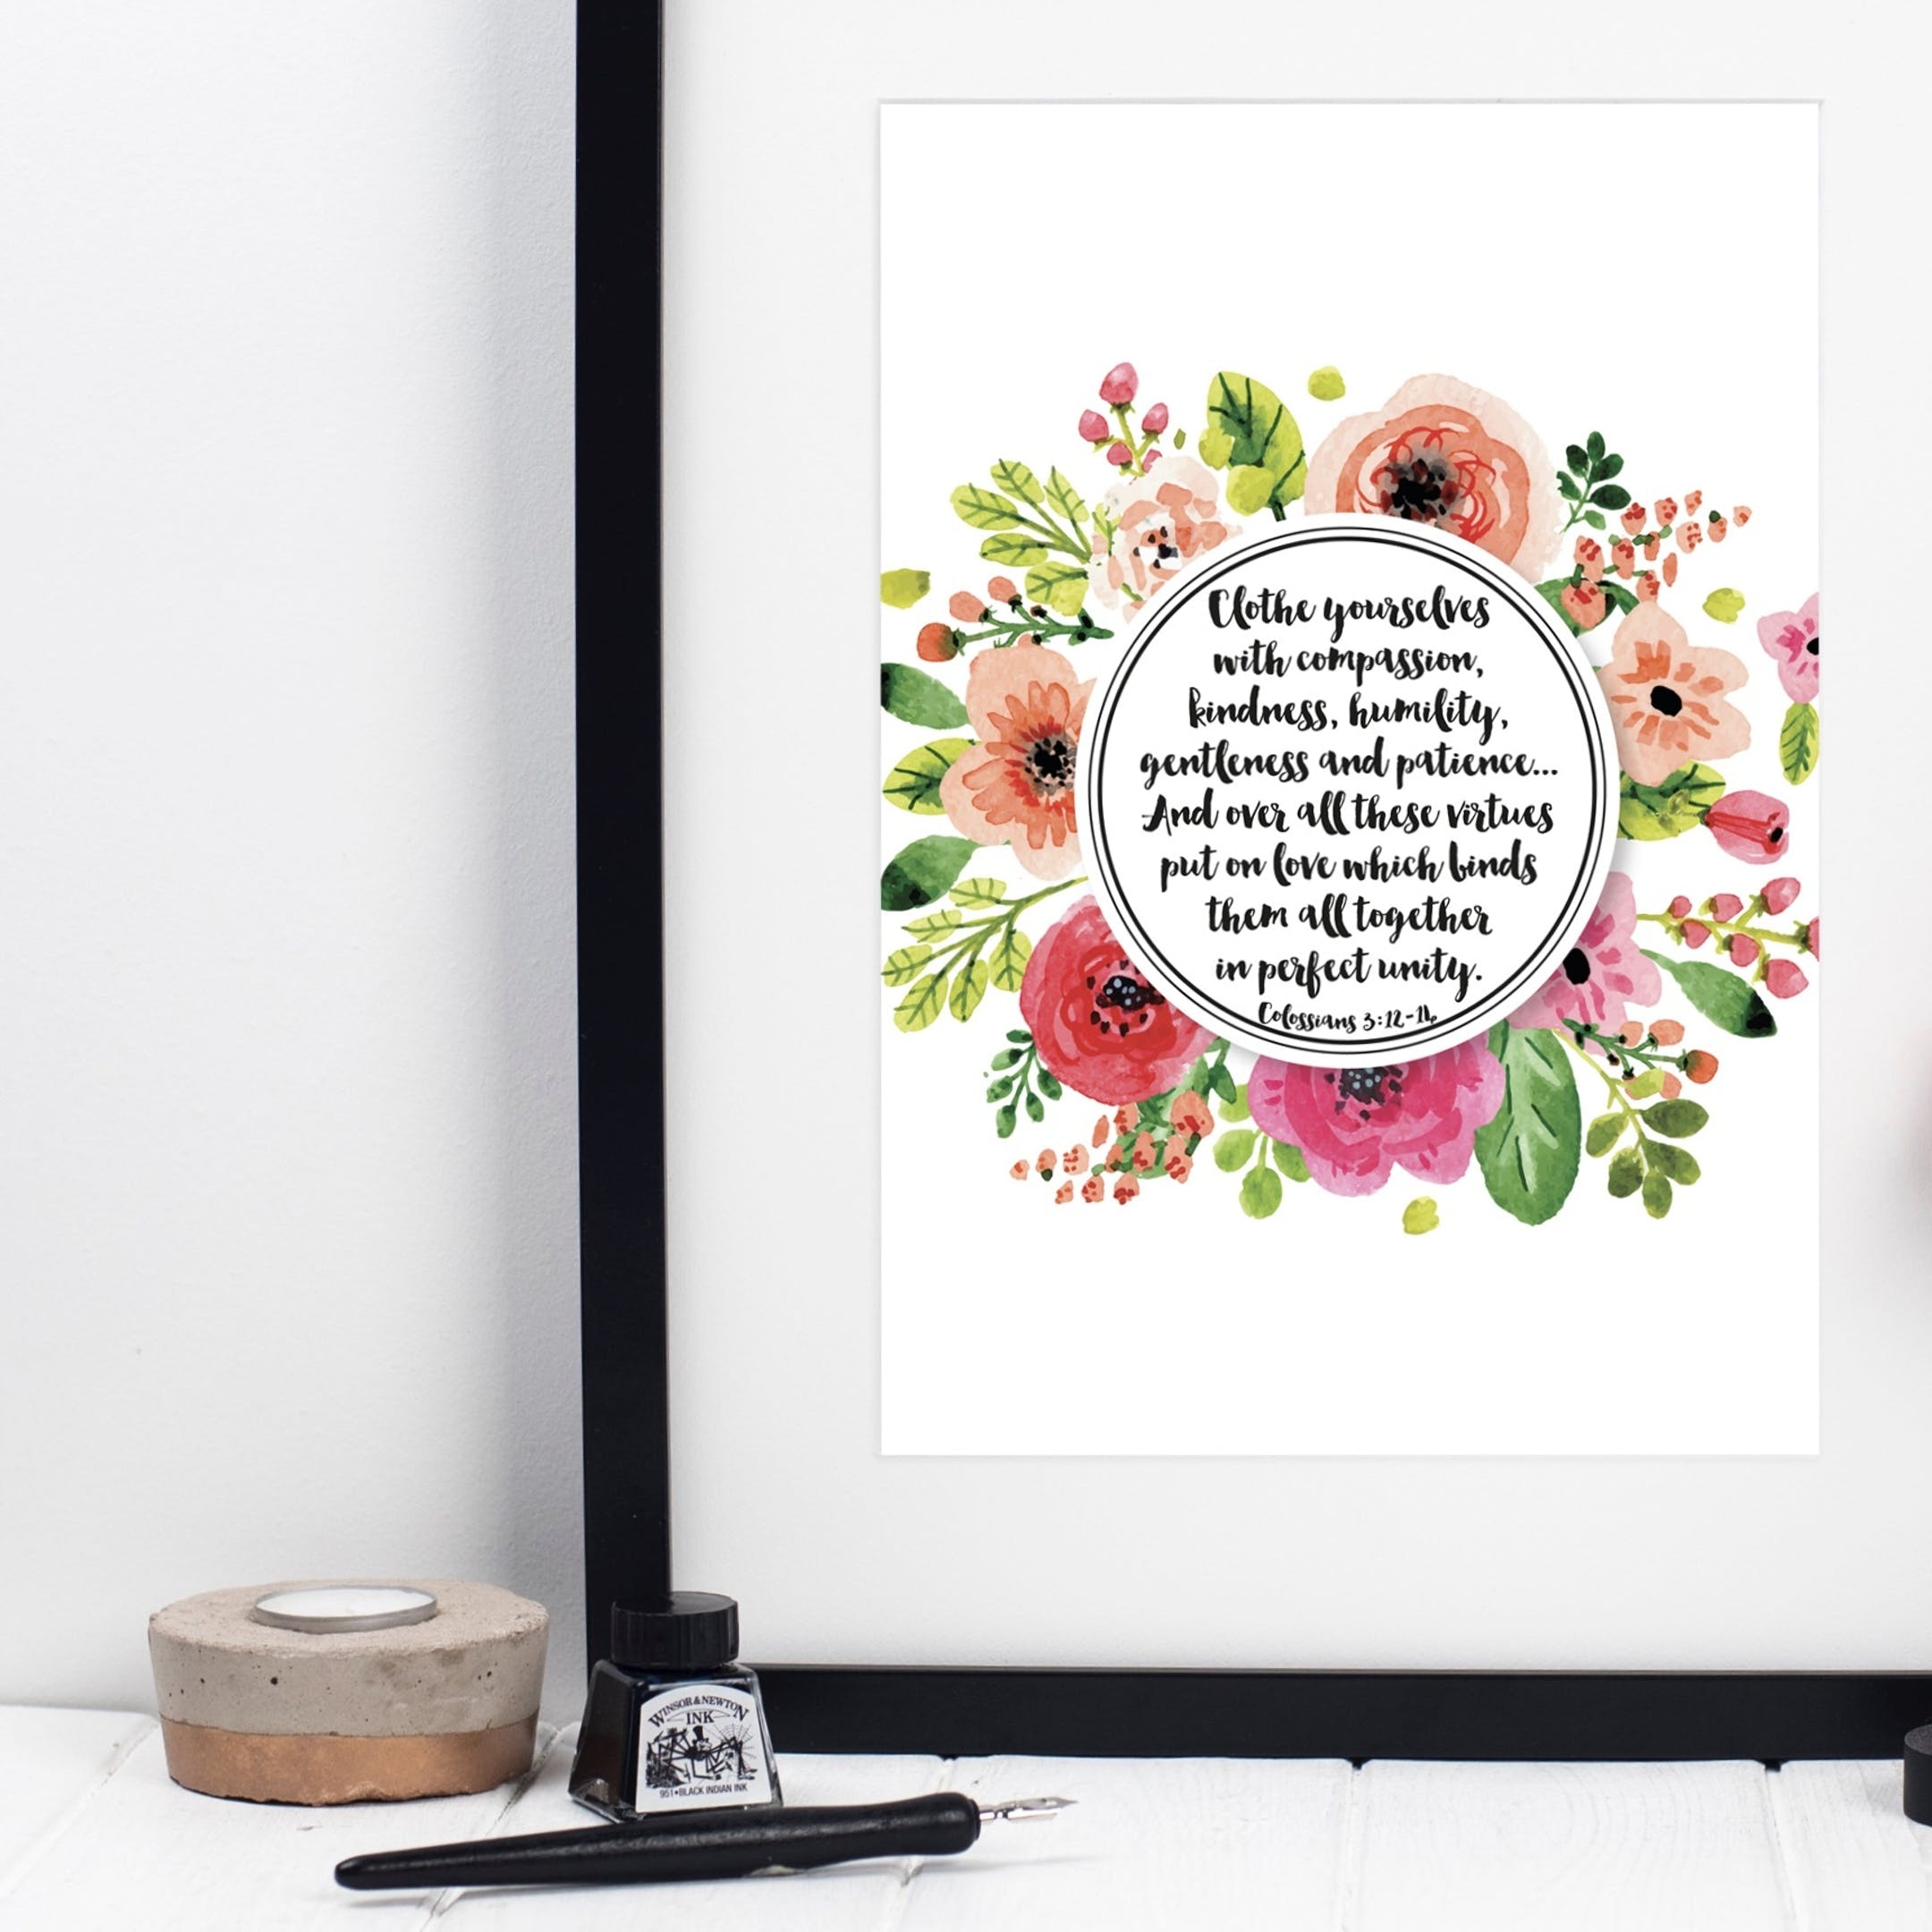 Clothe Yourselves With Compassion - Colossians 3:12-14 Print - Izzy and Pop